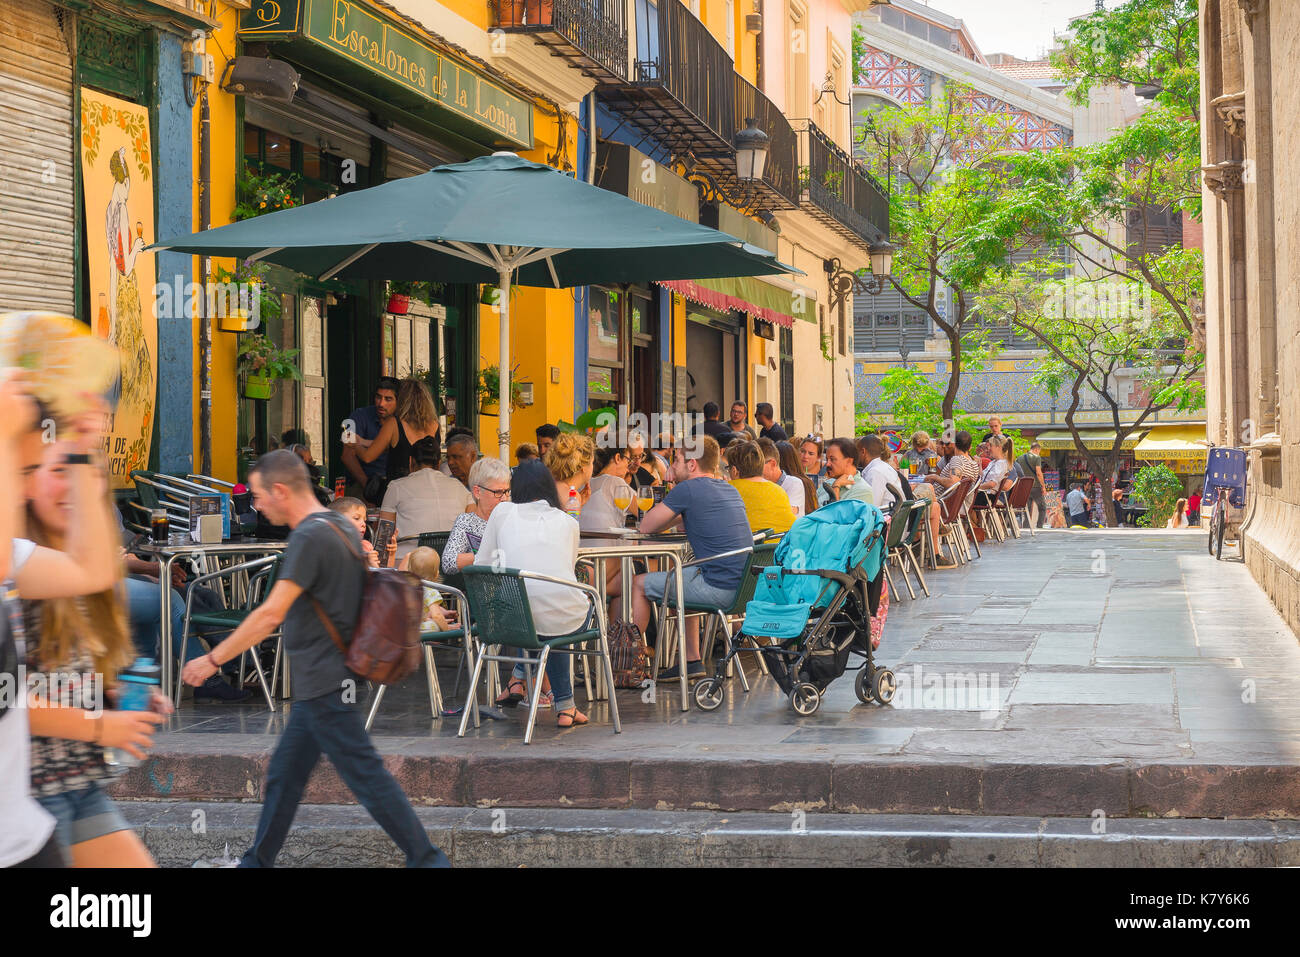 Valencia Spain street, people relax over lunch at street cafes sited near the Mercado Central in the old town - the Ciutat Vella - in Valencia, Spain. - Stock Image